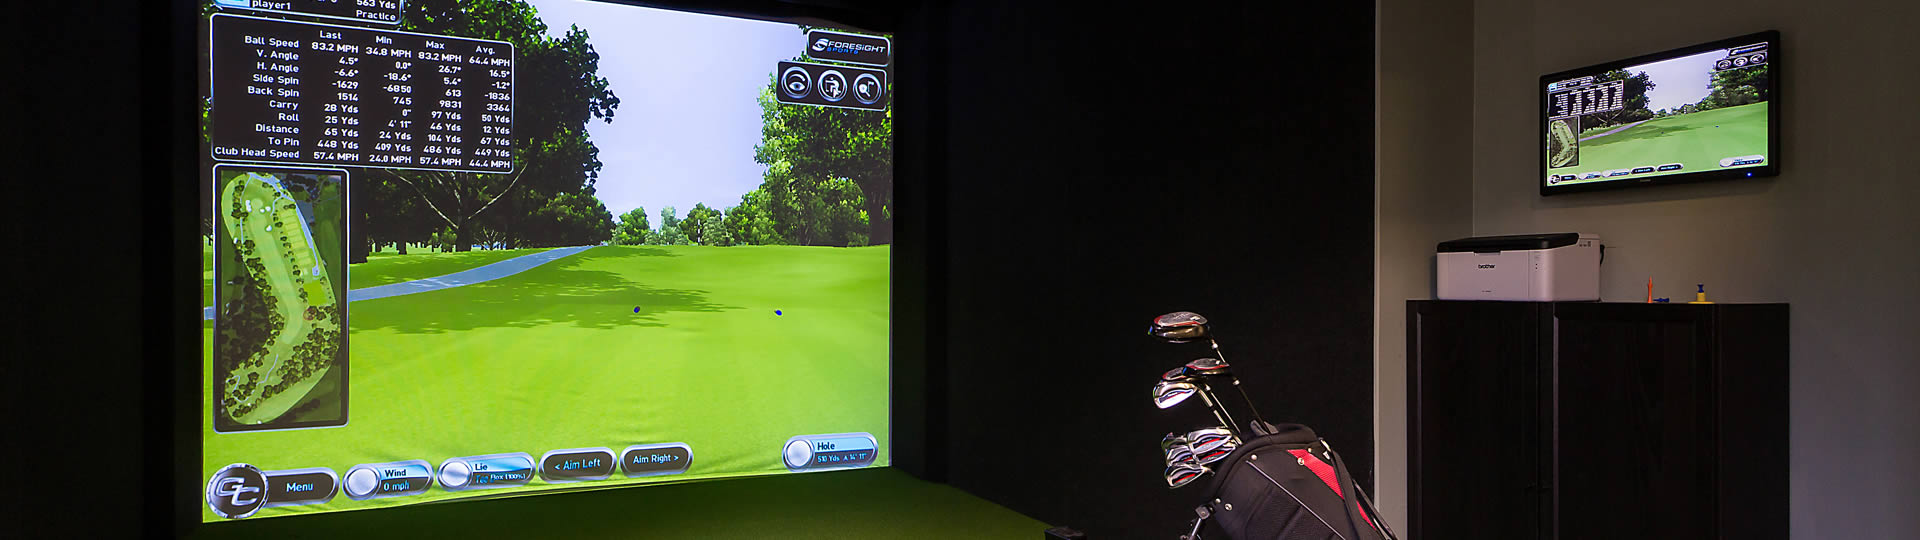 Virtual Golf - Lane End Conference Centre